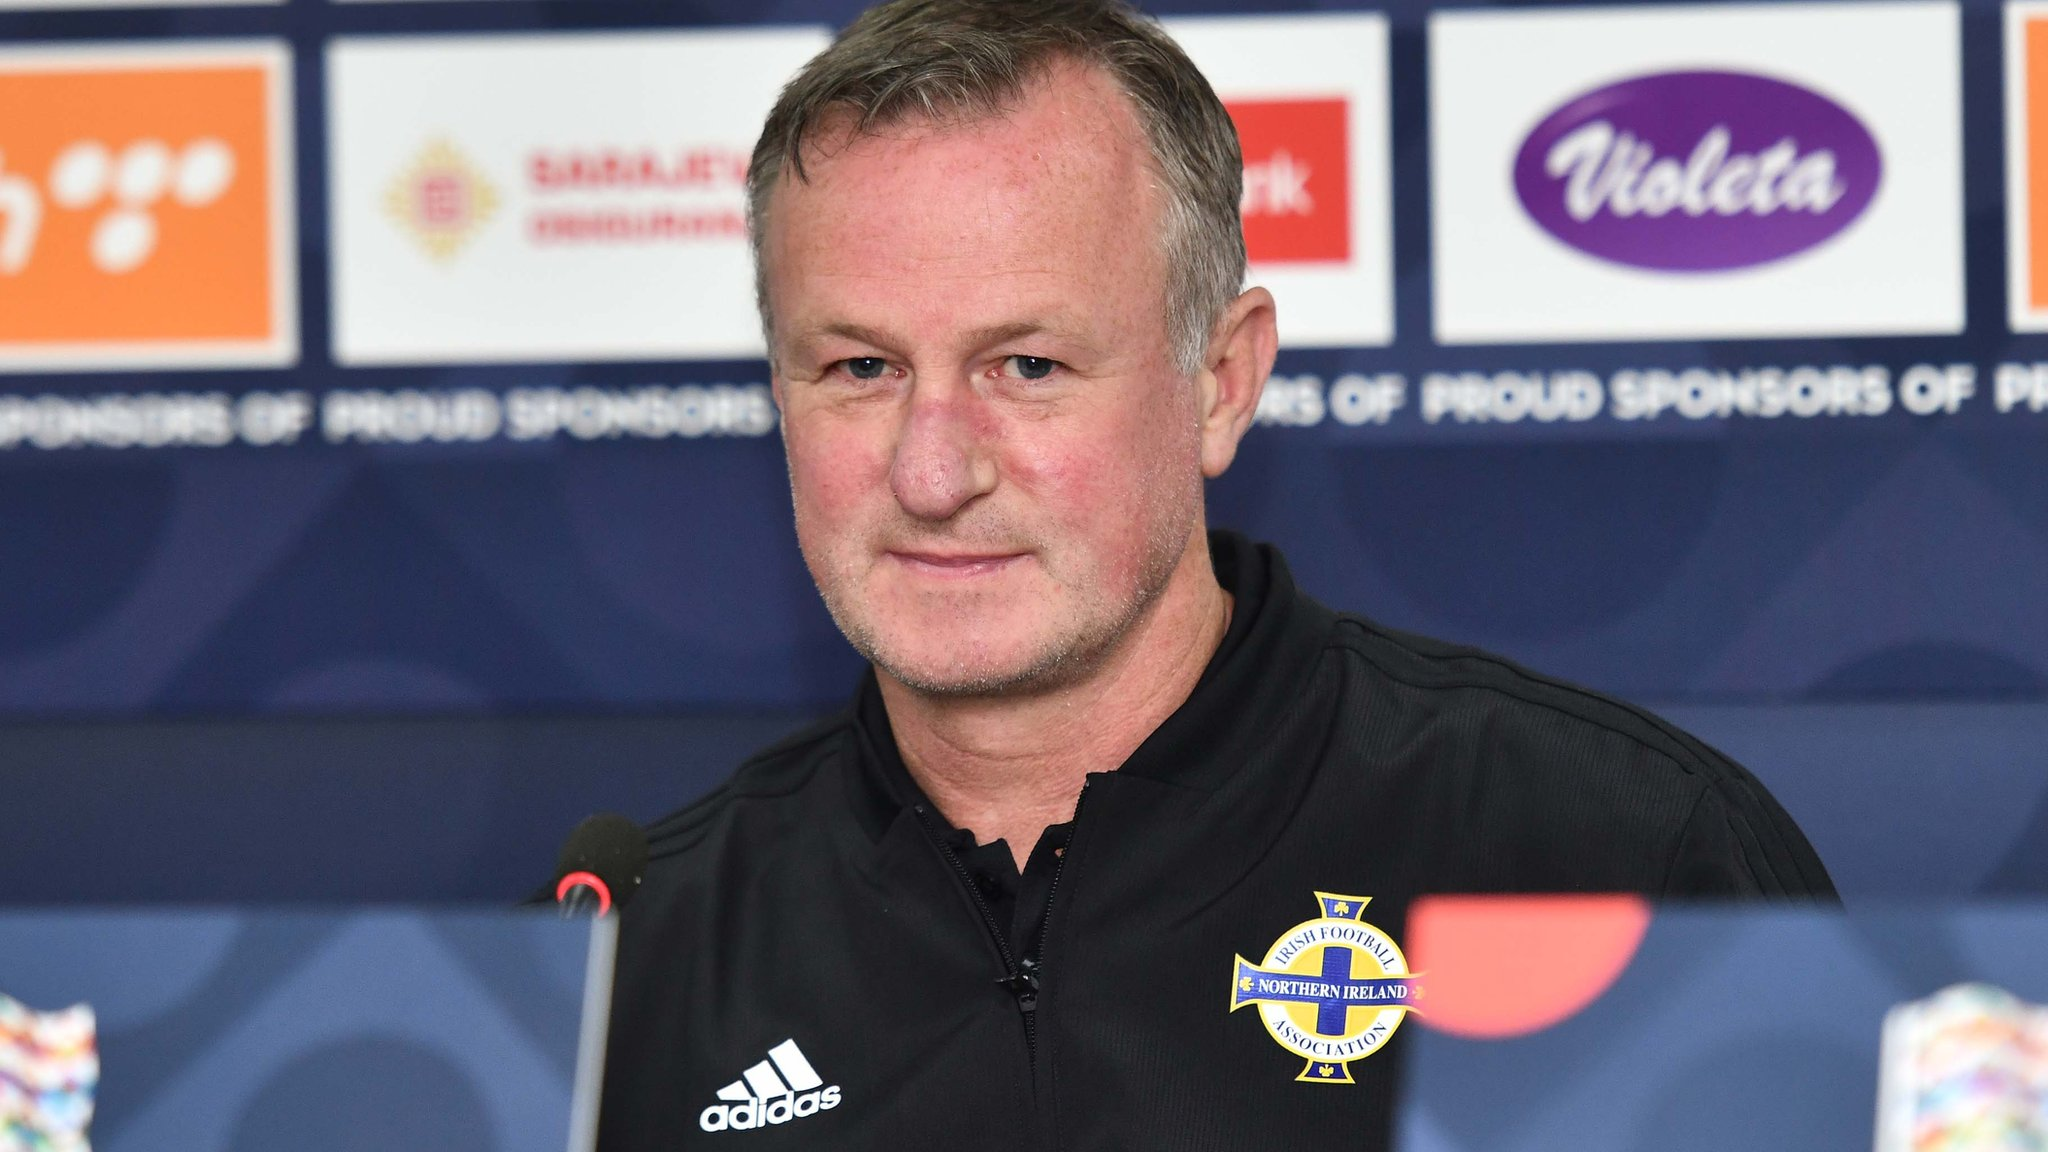 We can't be overpowered by Bosnia - Northern Ireland boss O'Neill